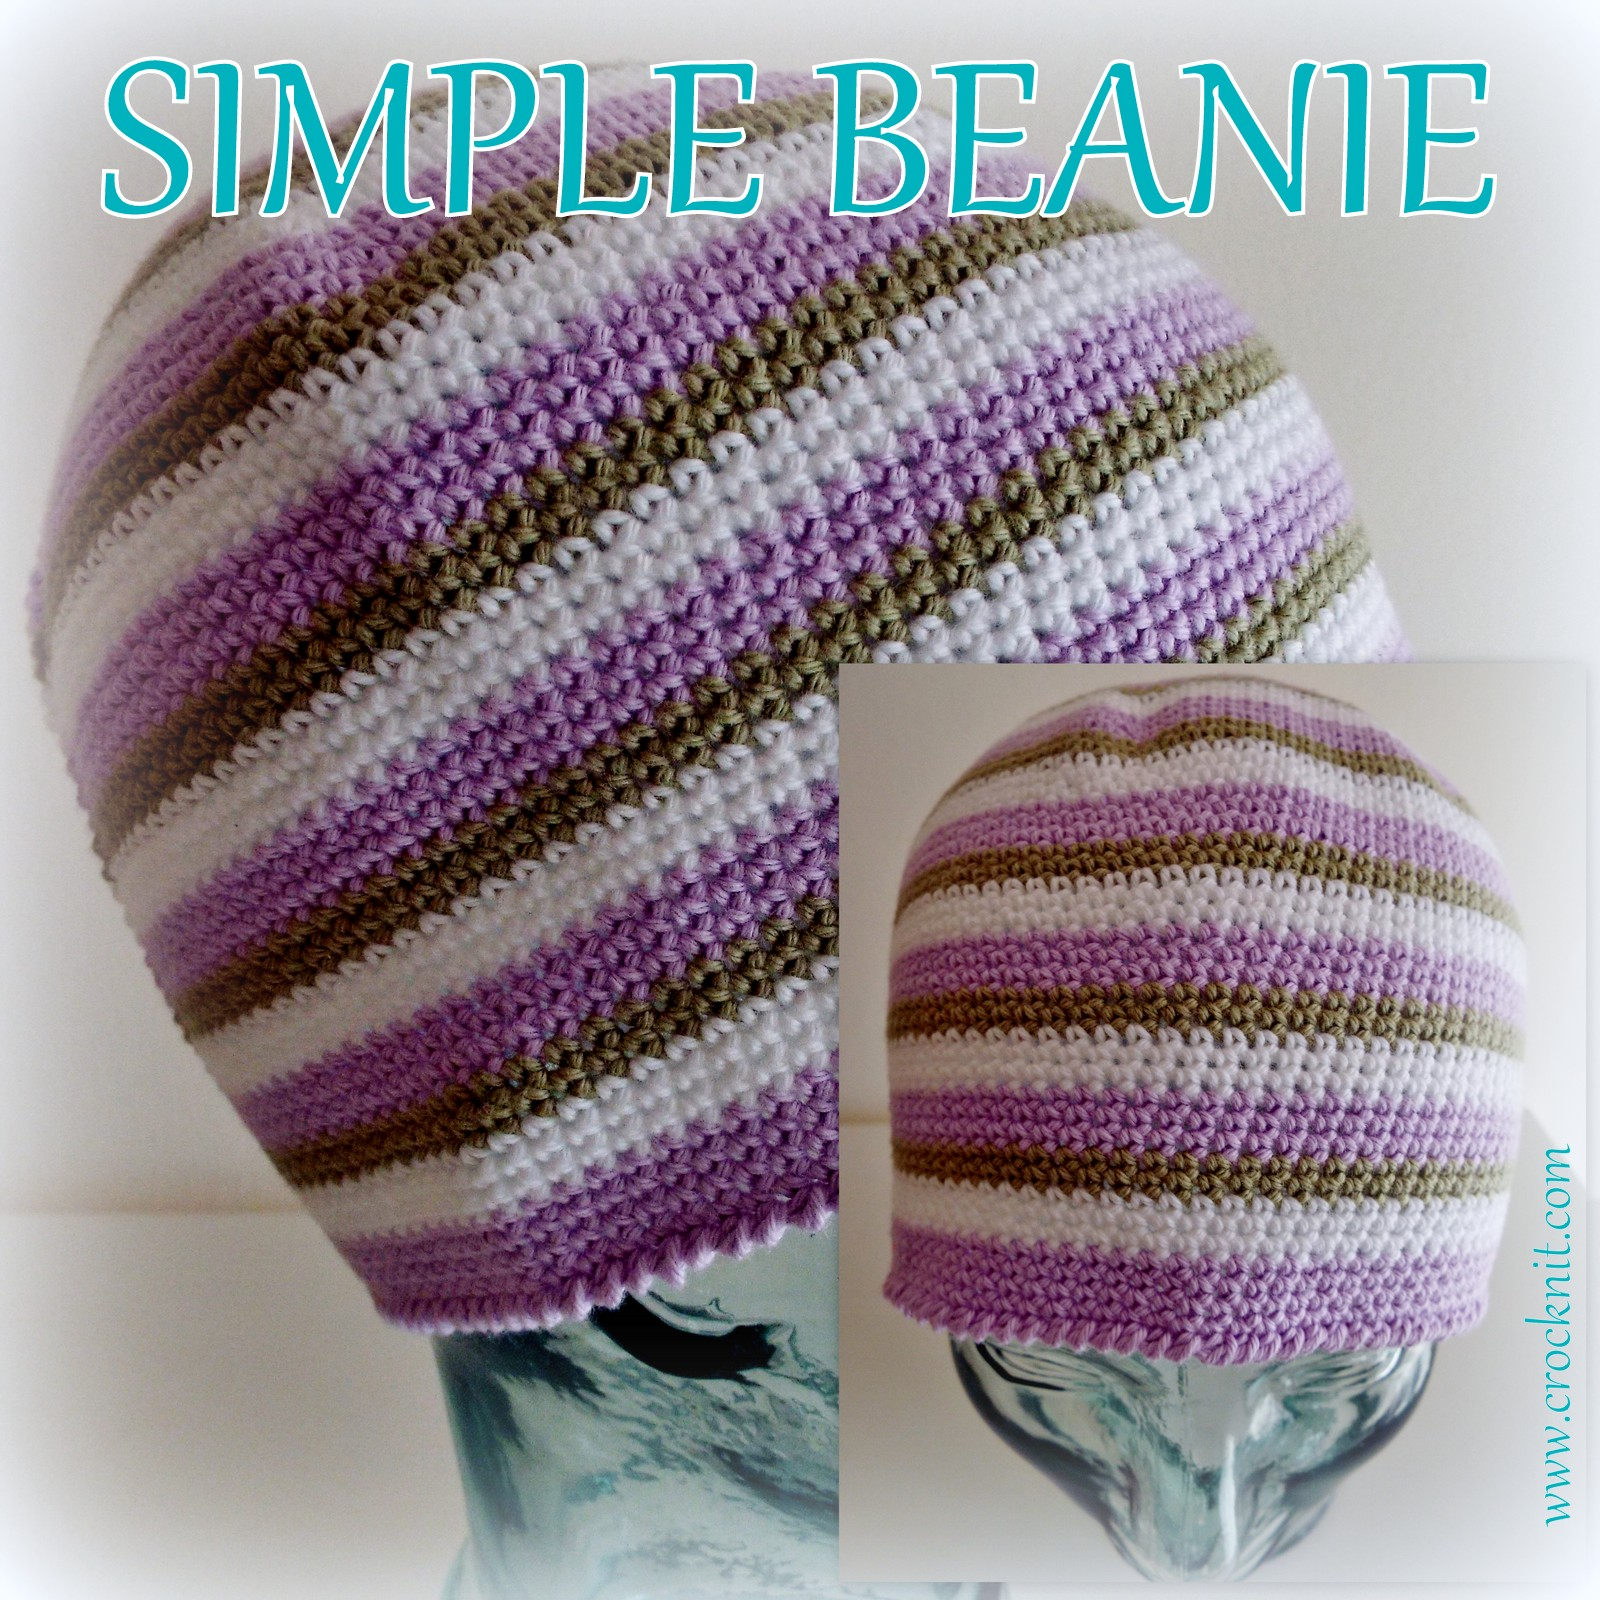 Microcknit Creations How To Crochet A Simple Beanie